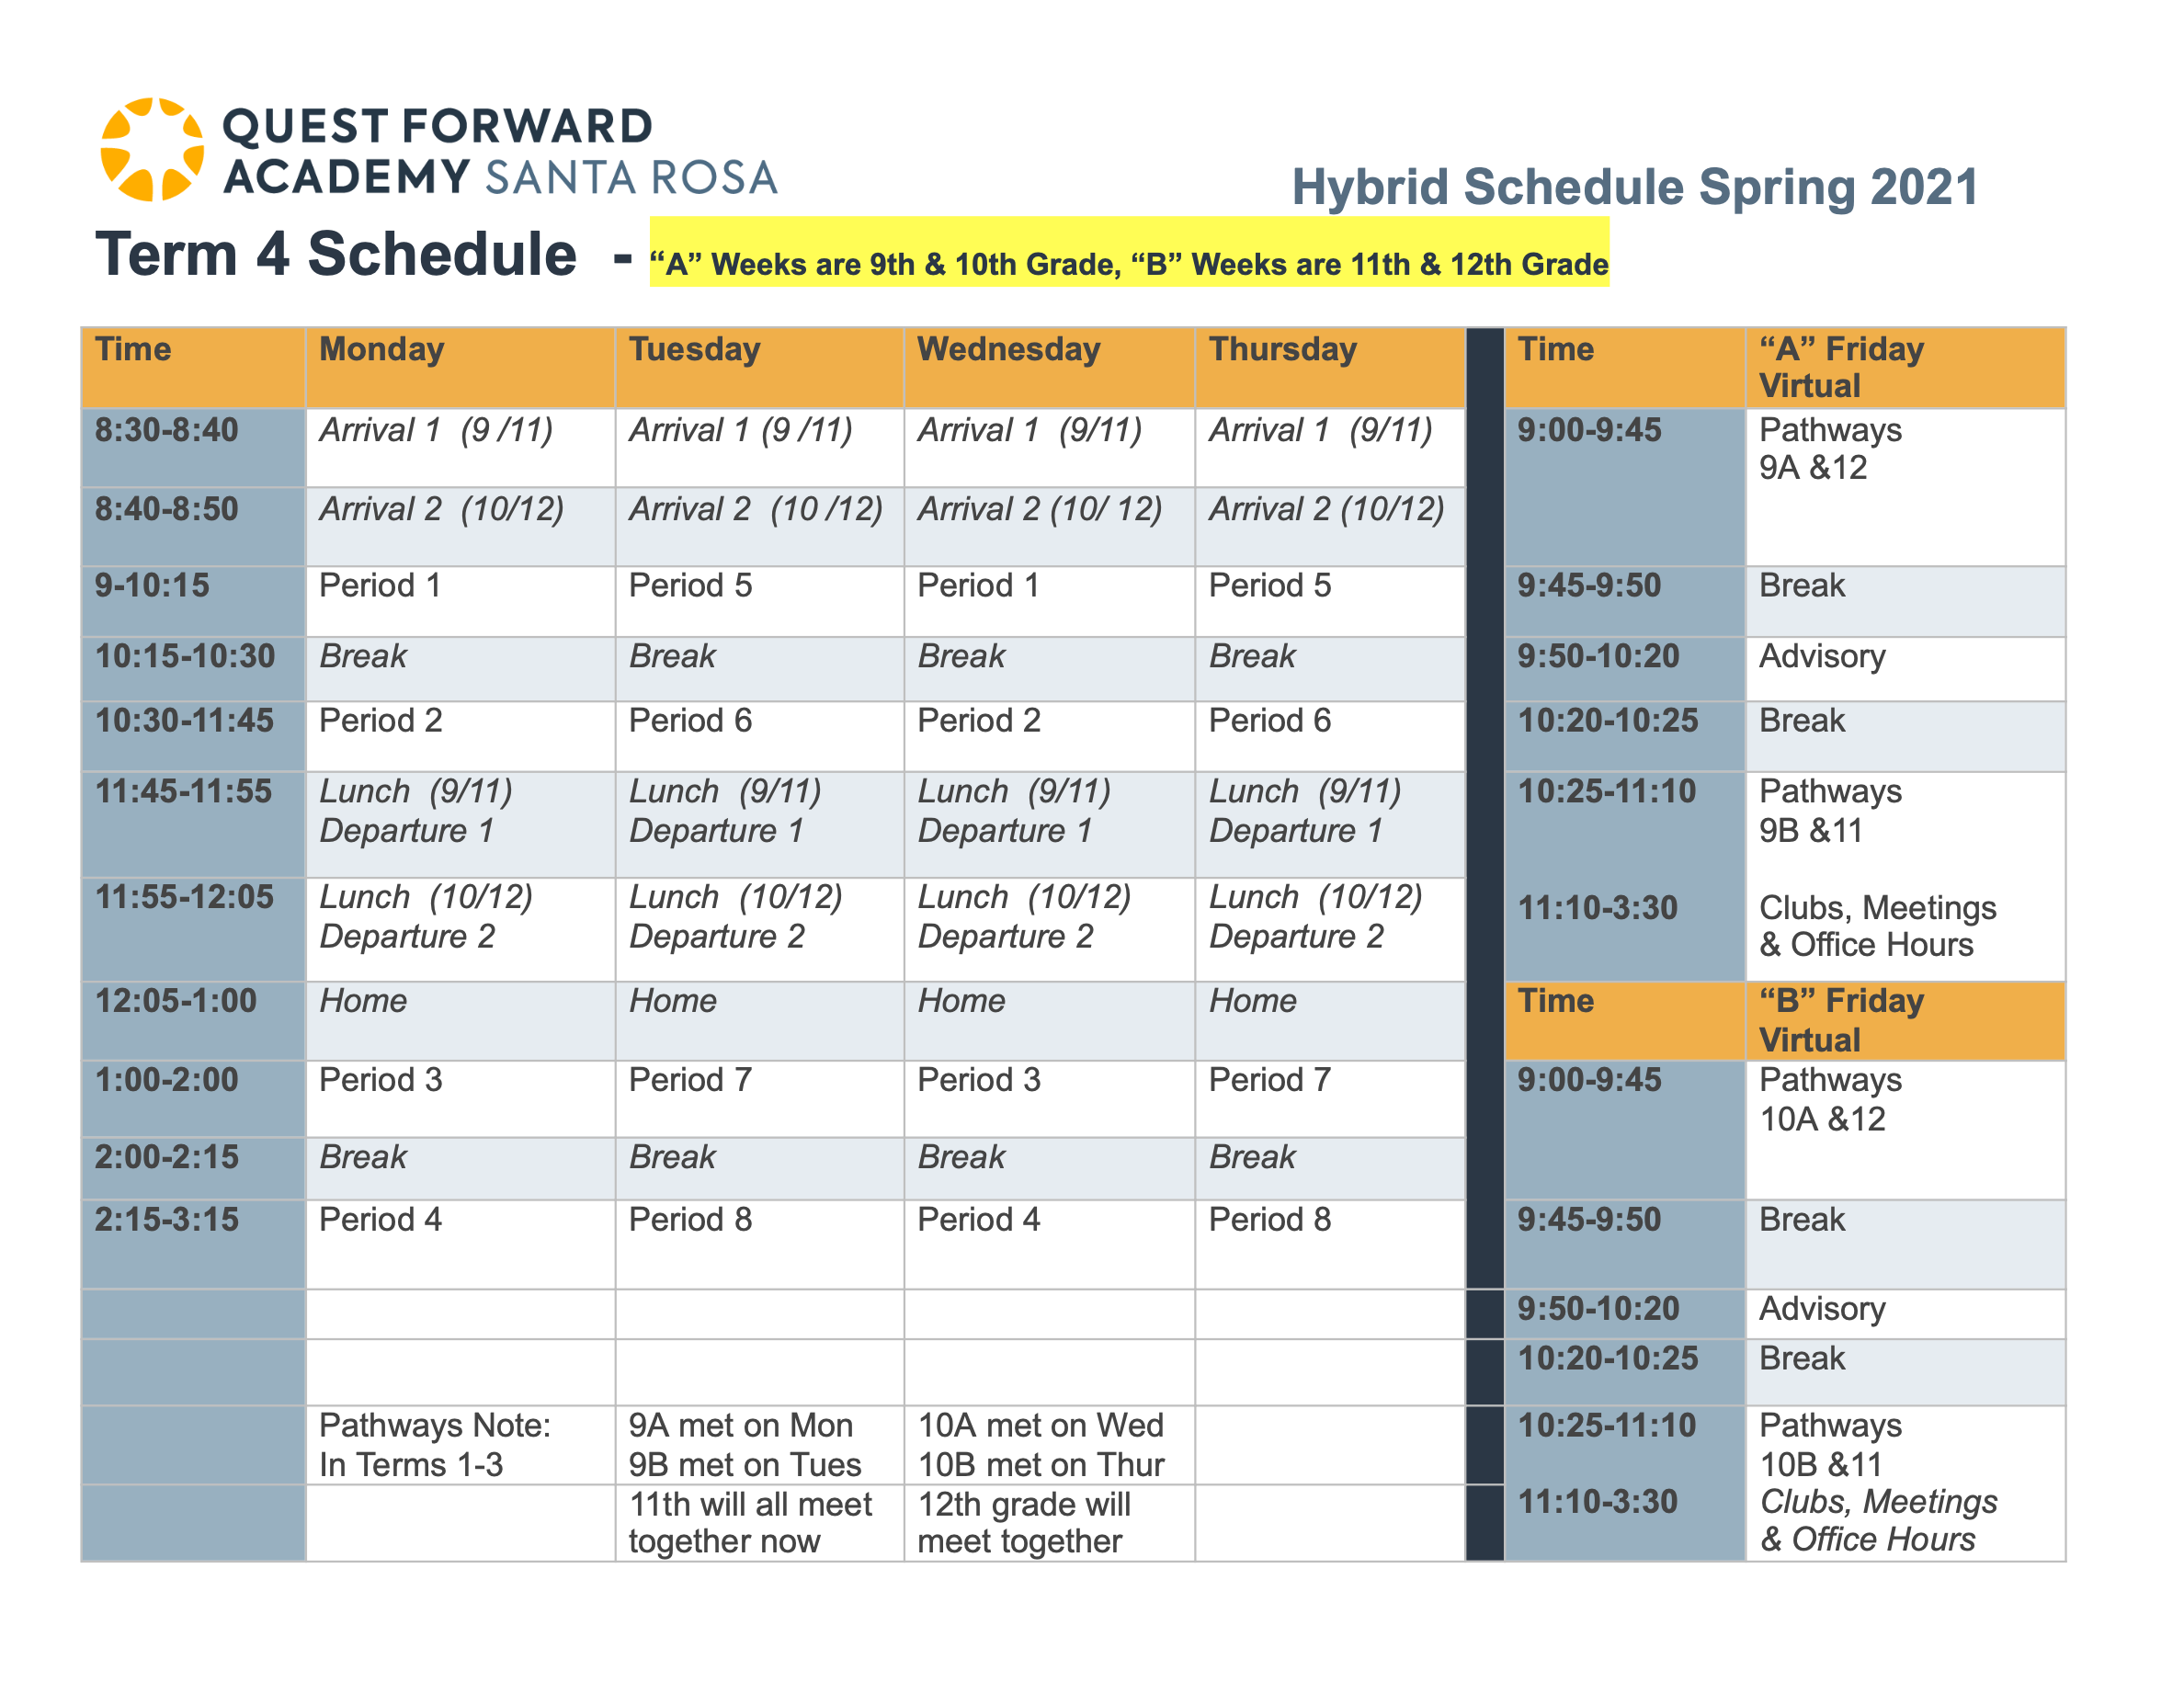 A table displaying the term 4 hybrid weekly schedule for Quest Forward Academy Santa Rosa.